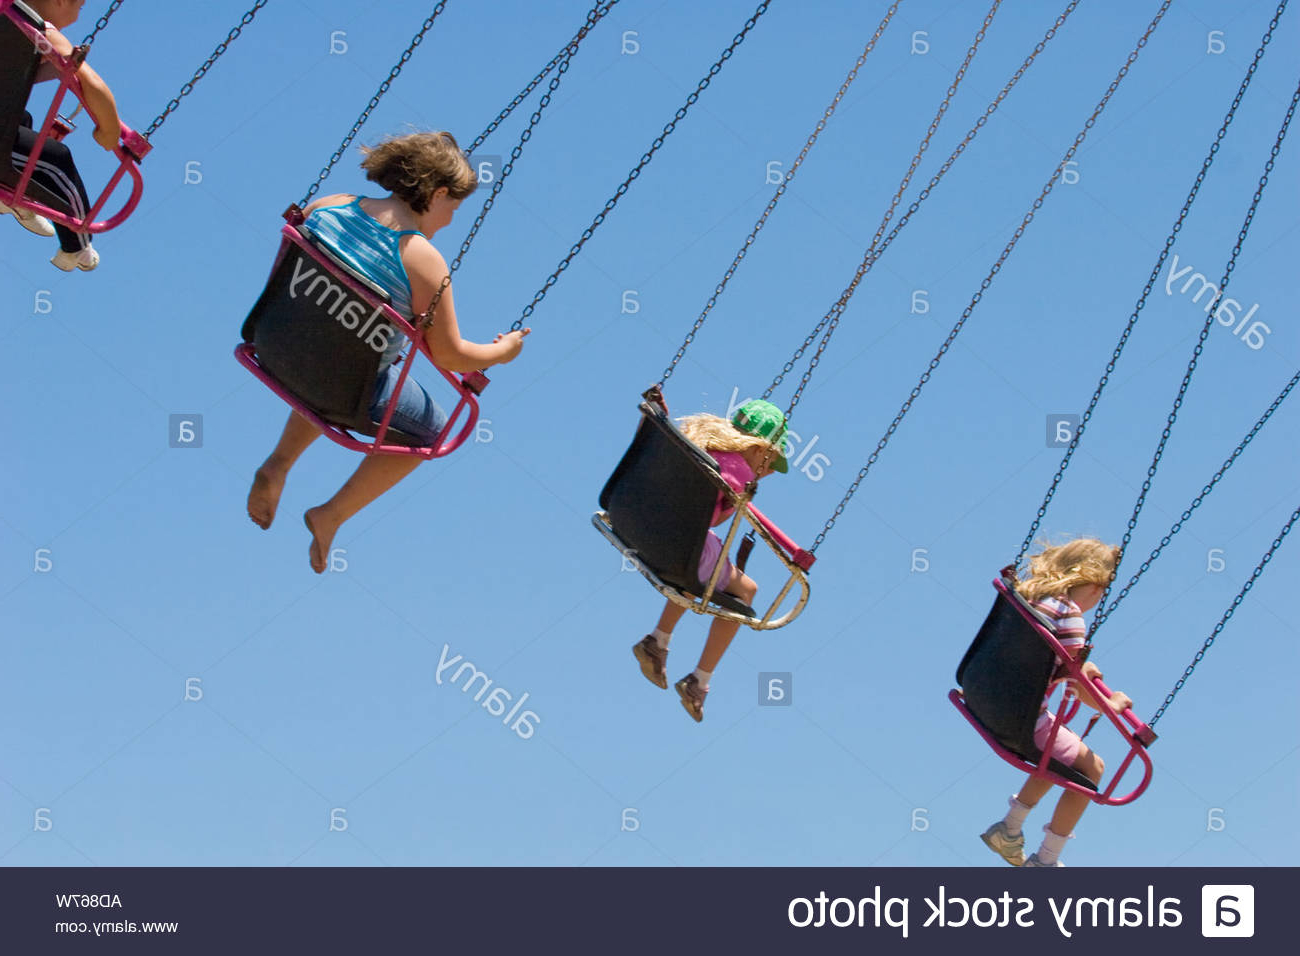 Children Flying In The Air On Seats Hanging From Chains On A Intended For Well Known Swing Seats With Chains (View 3 of 30)